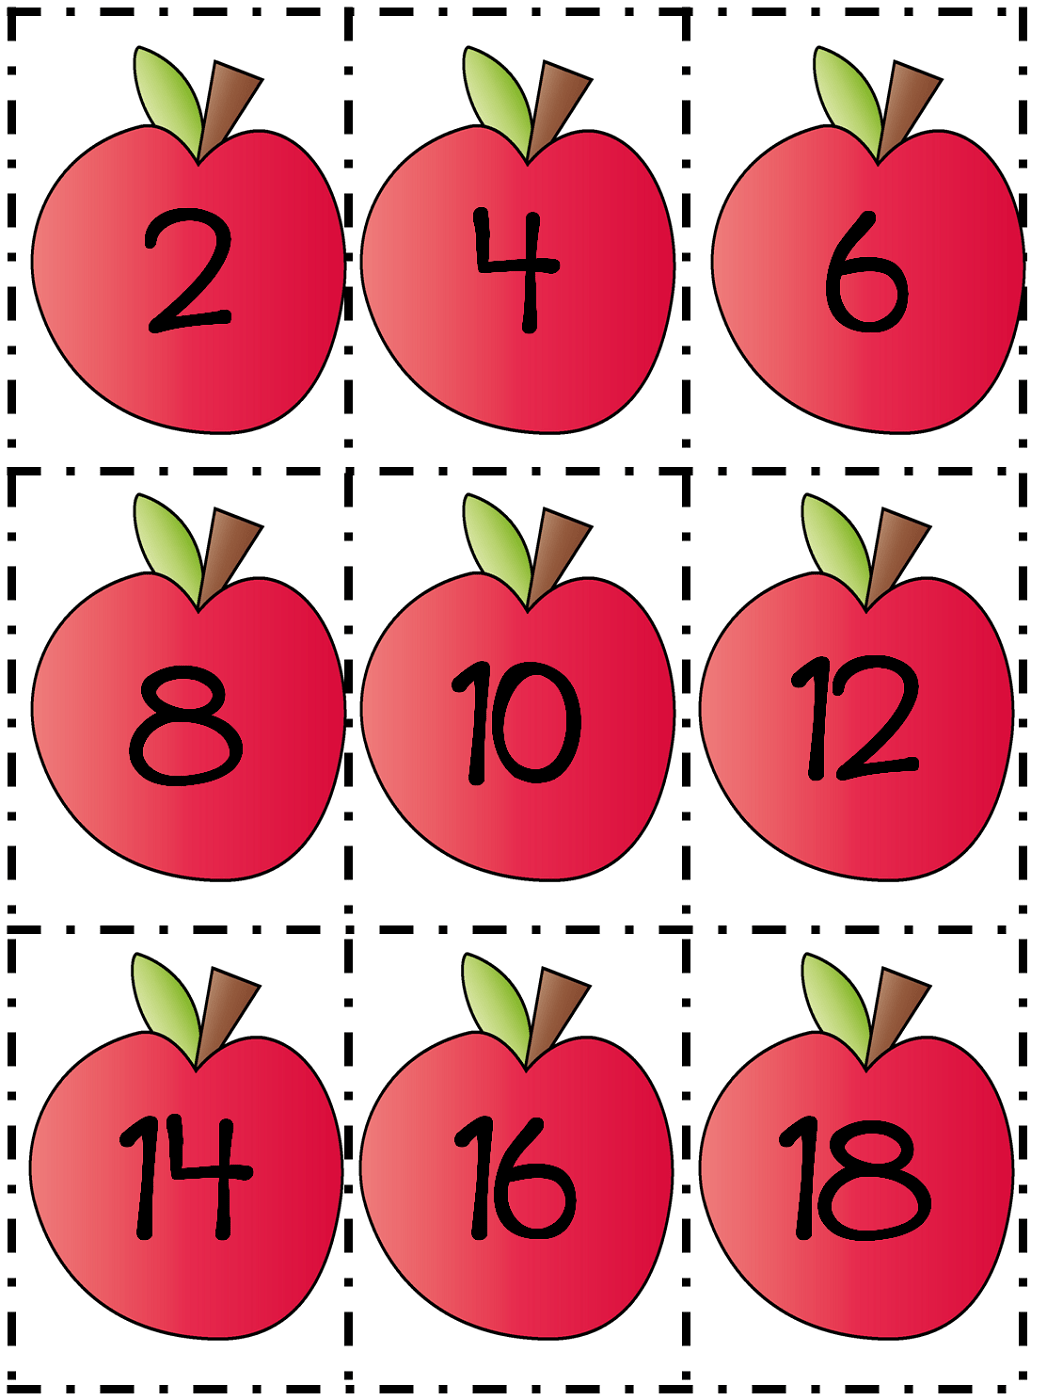 Count By 2s Worksheets